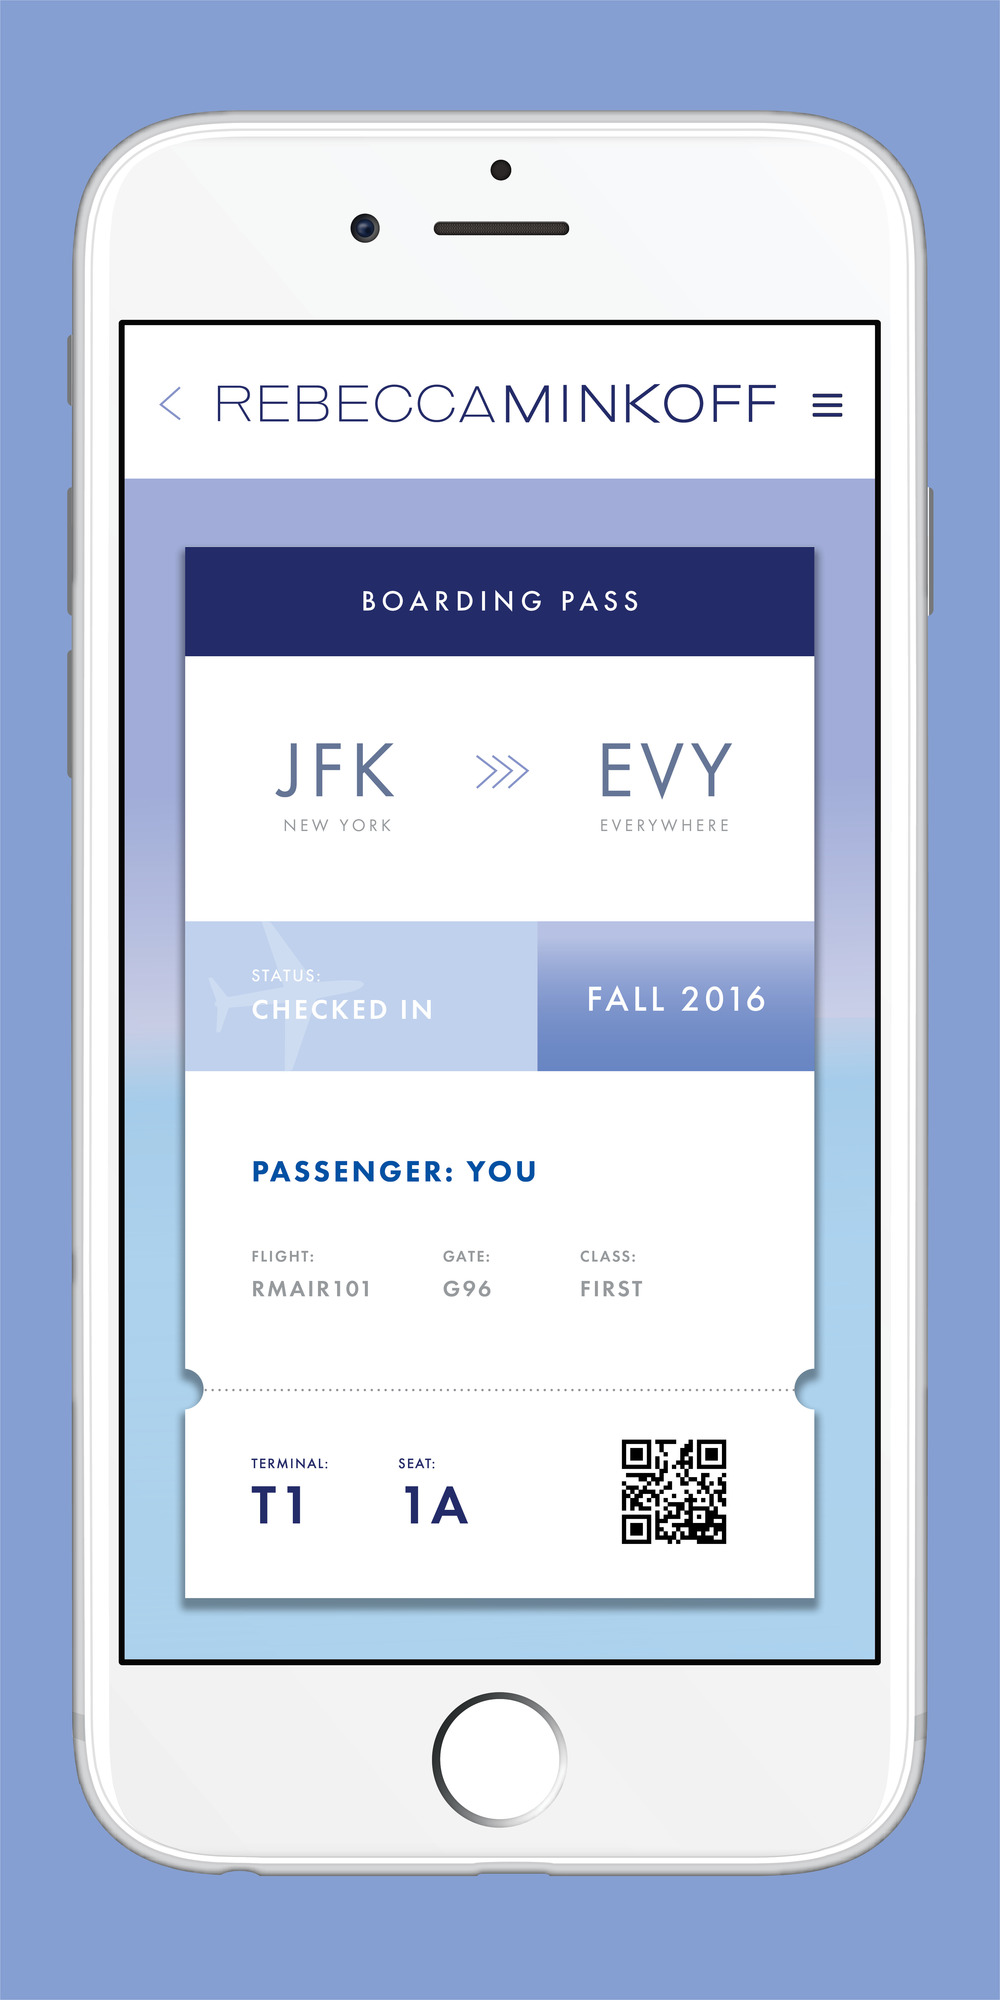 Digital_BoardingPass2_NYC.jpg